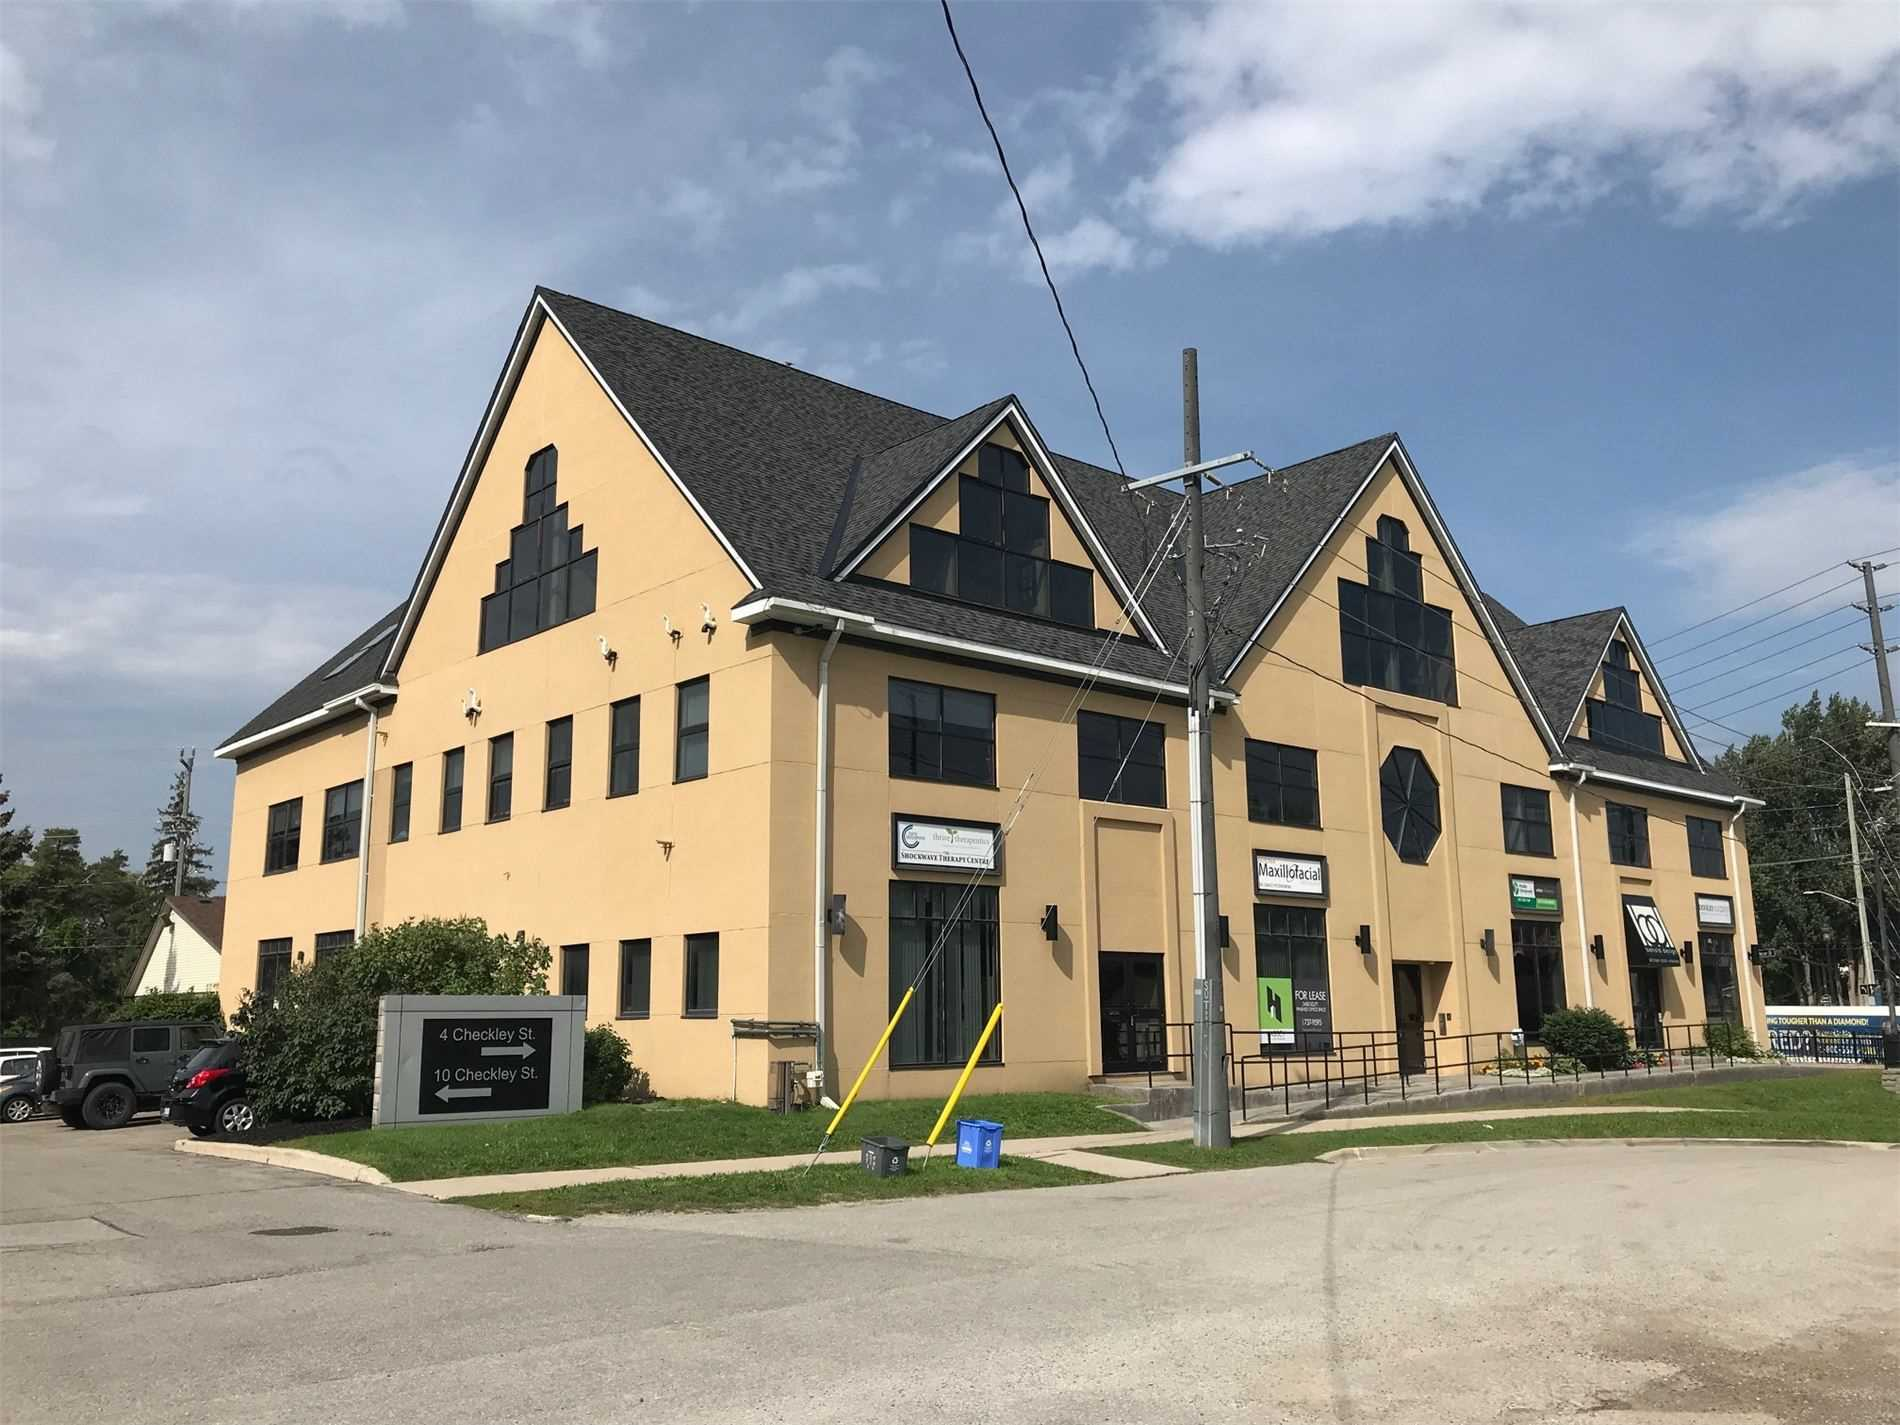 Excellent Ground Floor Unit In Renovated Building In Downtown Barrie. Building Has New Elevator, Direct Access From Checkley Street, Great Visibility And Close To Downtown Shops & Barrie's Beautiful Waterfront. Utilities Included In Mit. All Offers Must Be On Landlord's Standard Offer Tro Lease Form.